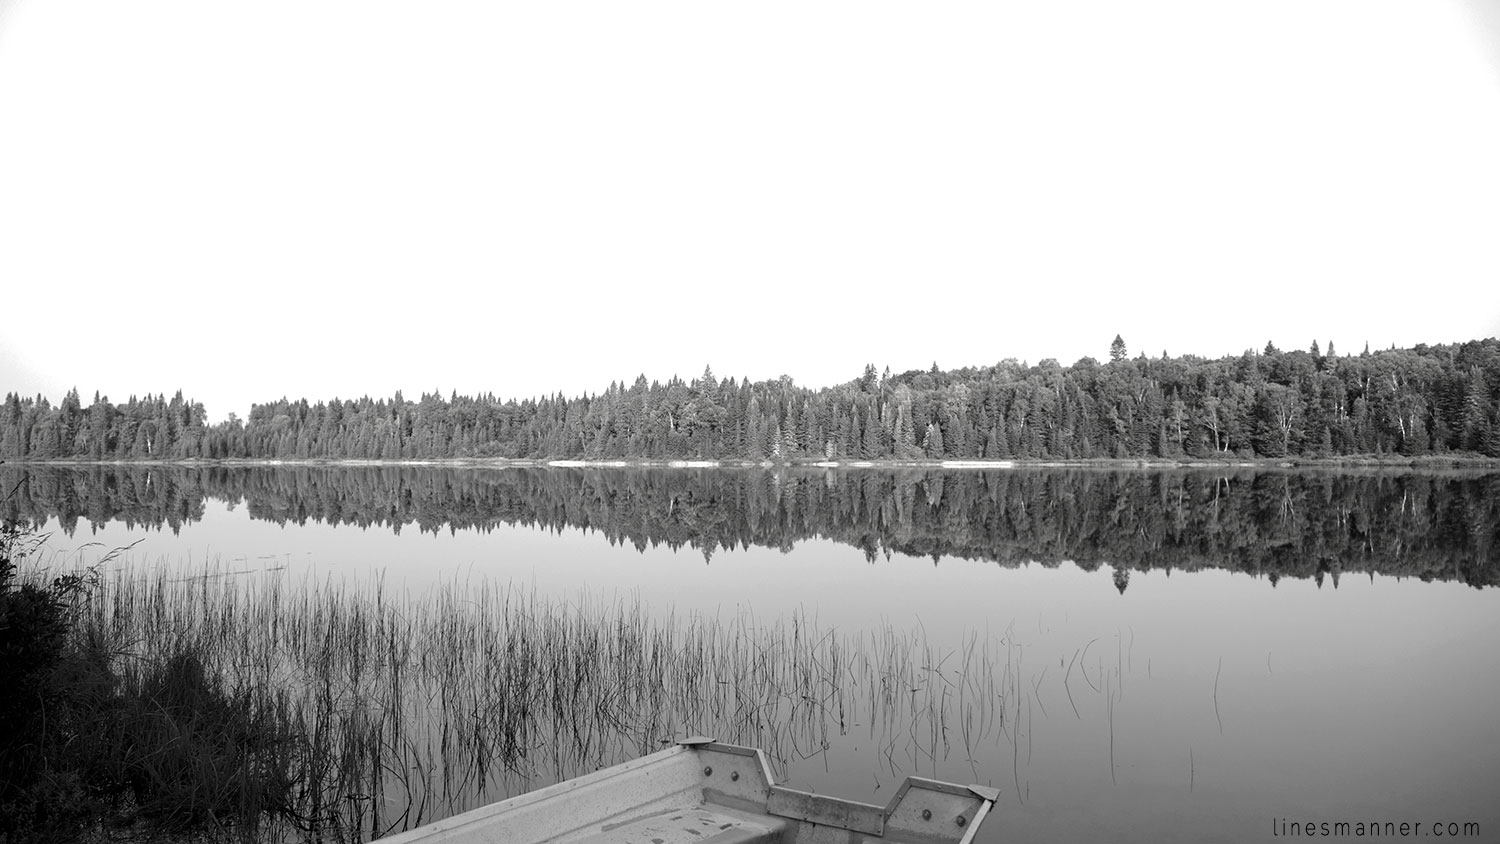 Lines-Manner-Photography-Escape-Peaceful-Serenity-Travel-Canada-Quebec-Places-Holiday-Weekend-Islands-World-Trip-4